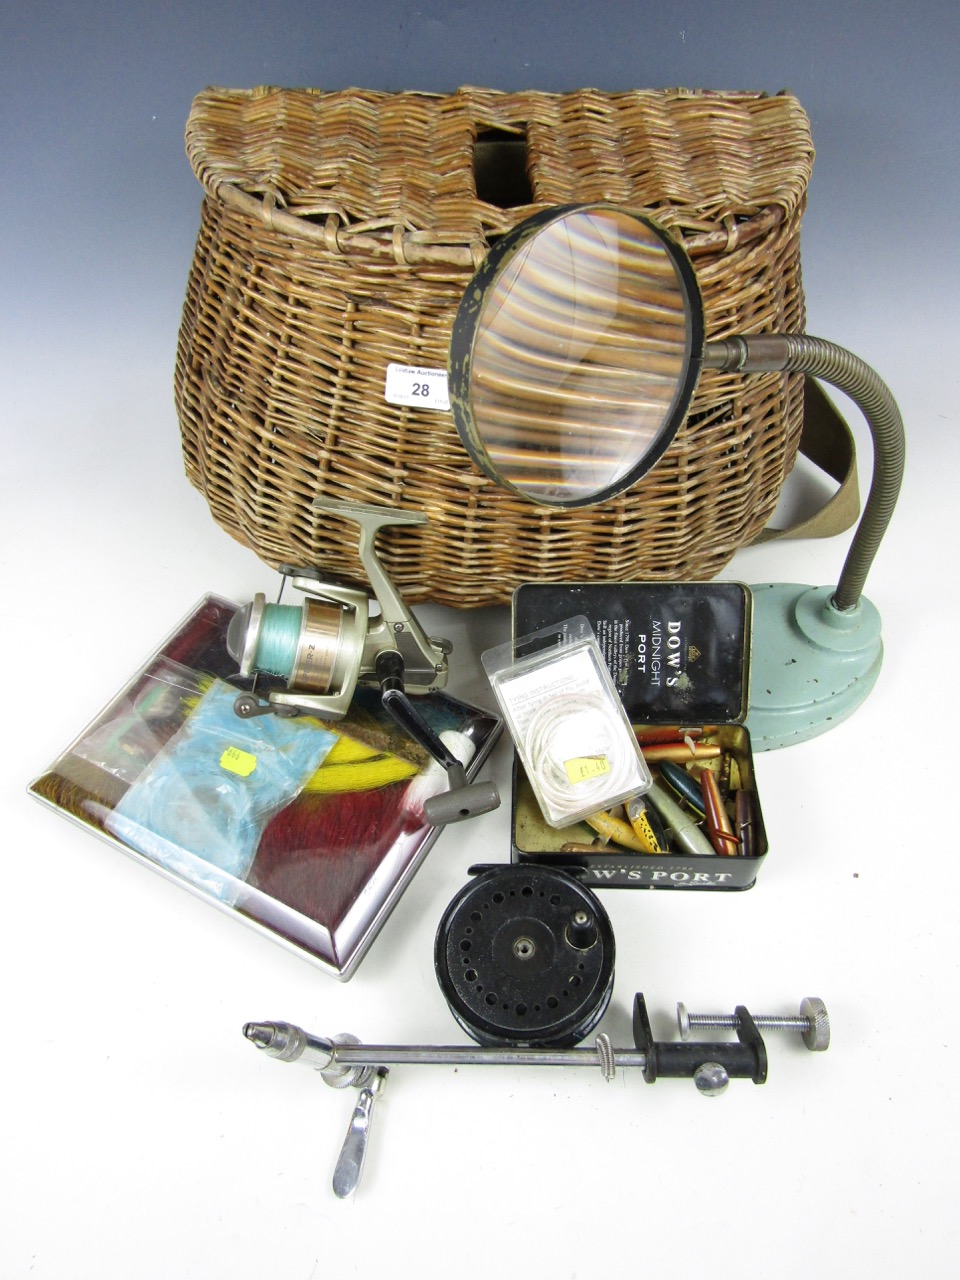 Lot 28 - A fishing creel including a Daiwa Jupiter Z reel together with a magnifying glass etc